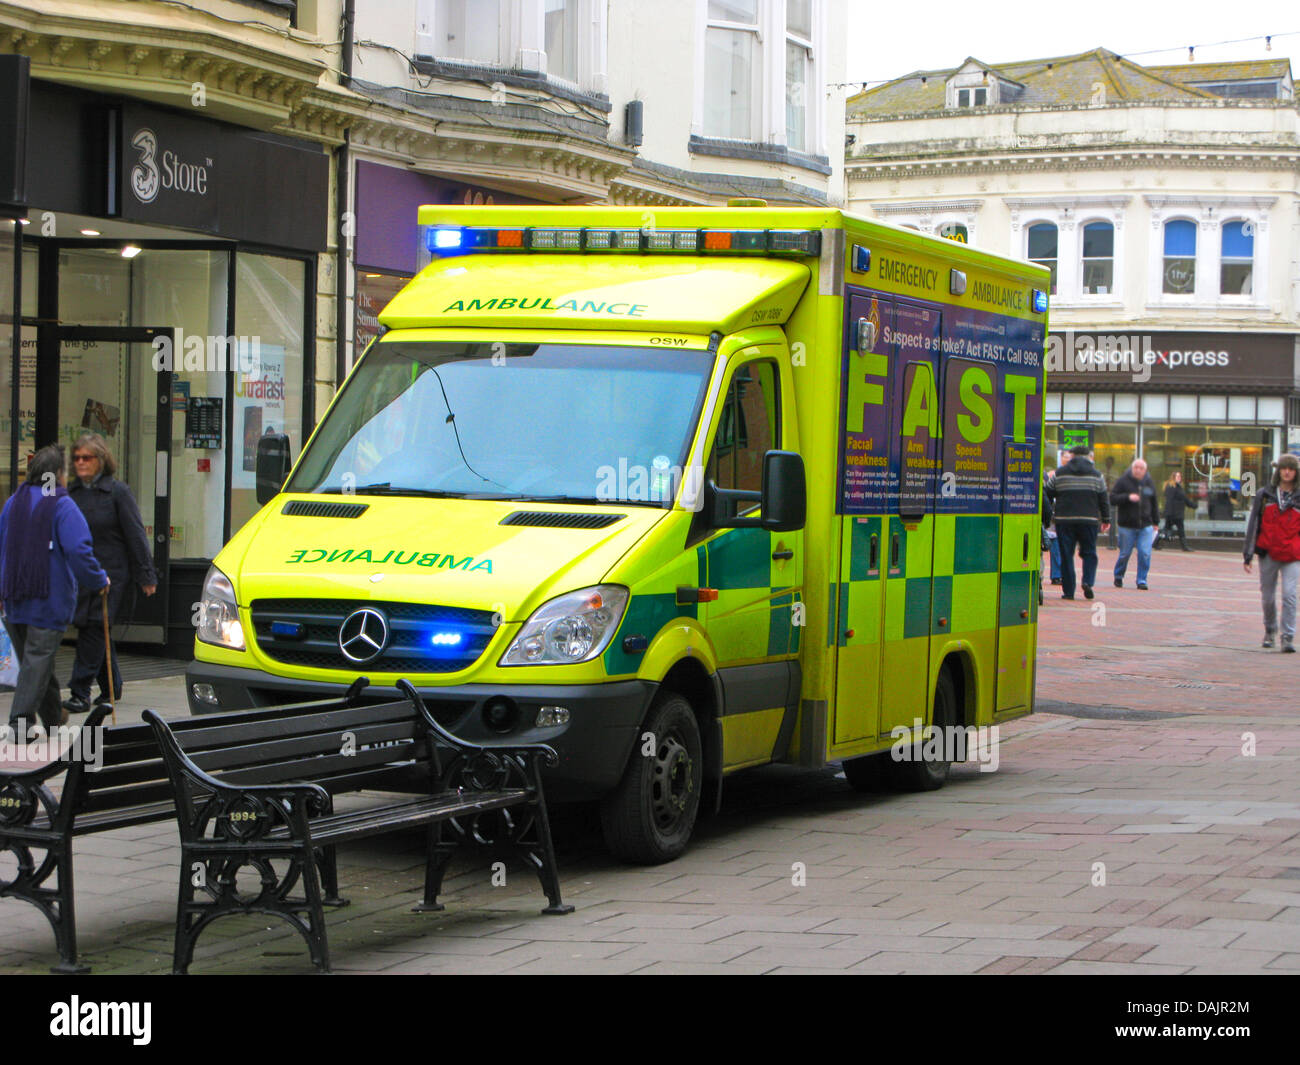 Sussex Ambulance Service Paramedic Unit attending an emergency in Worthing town centre shopping area West Sussex - Stock Image